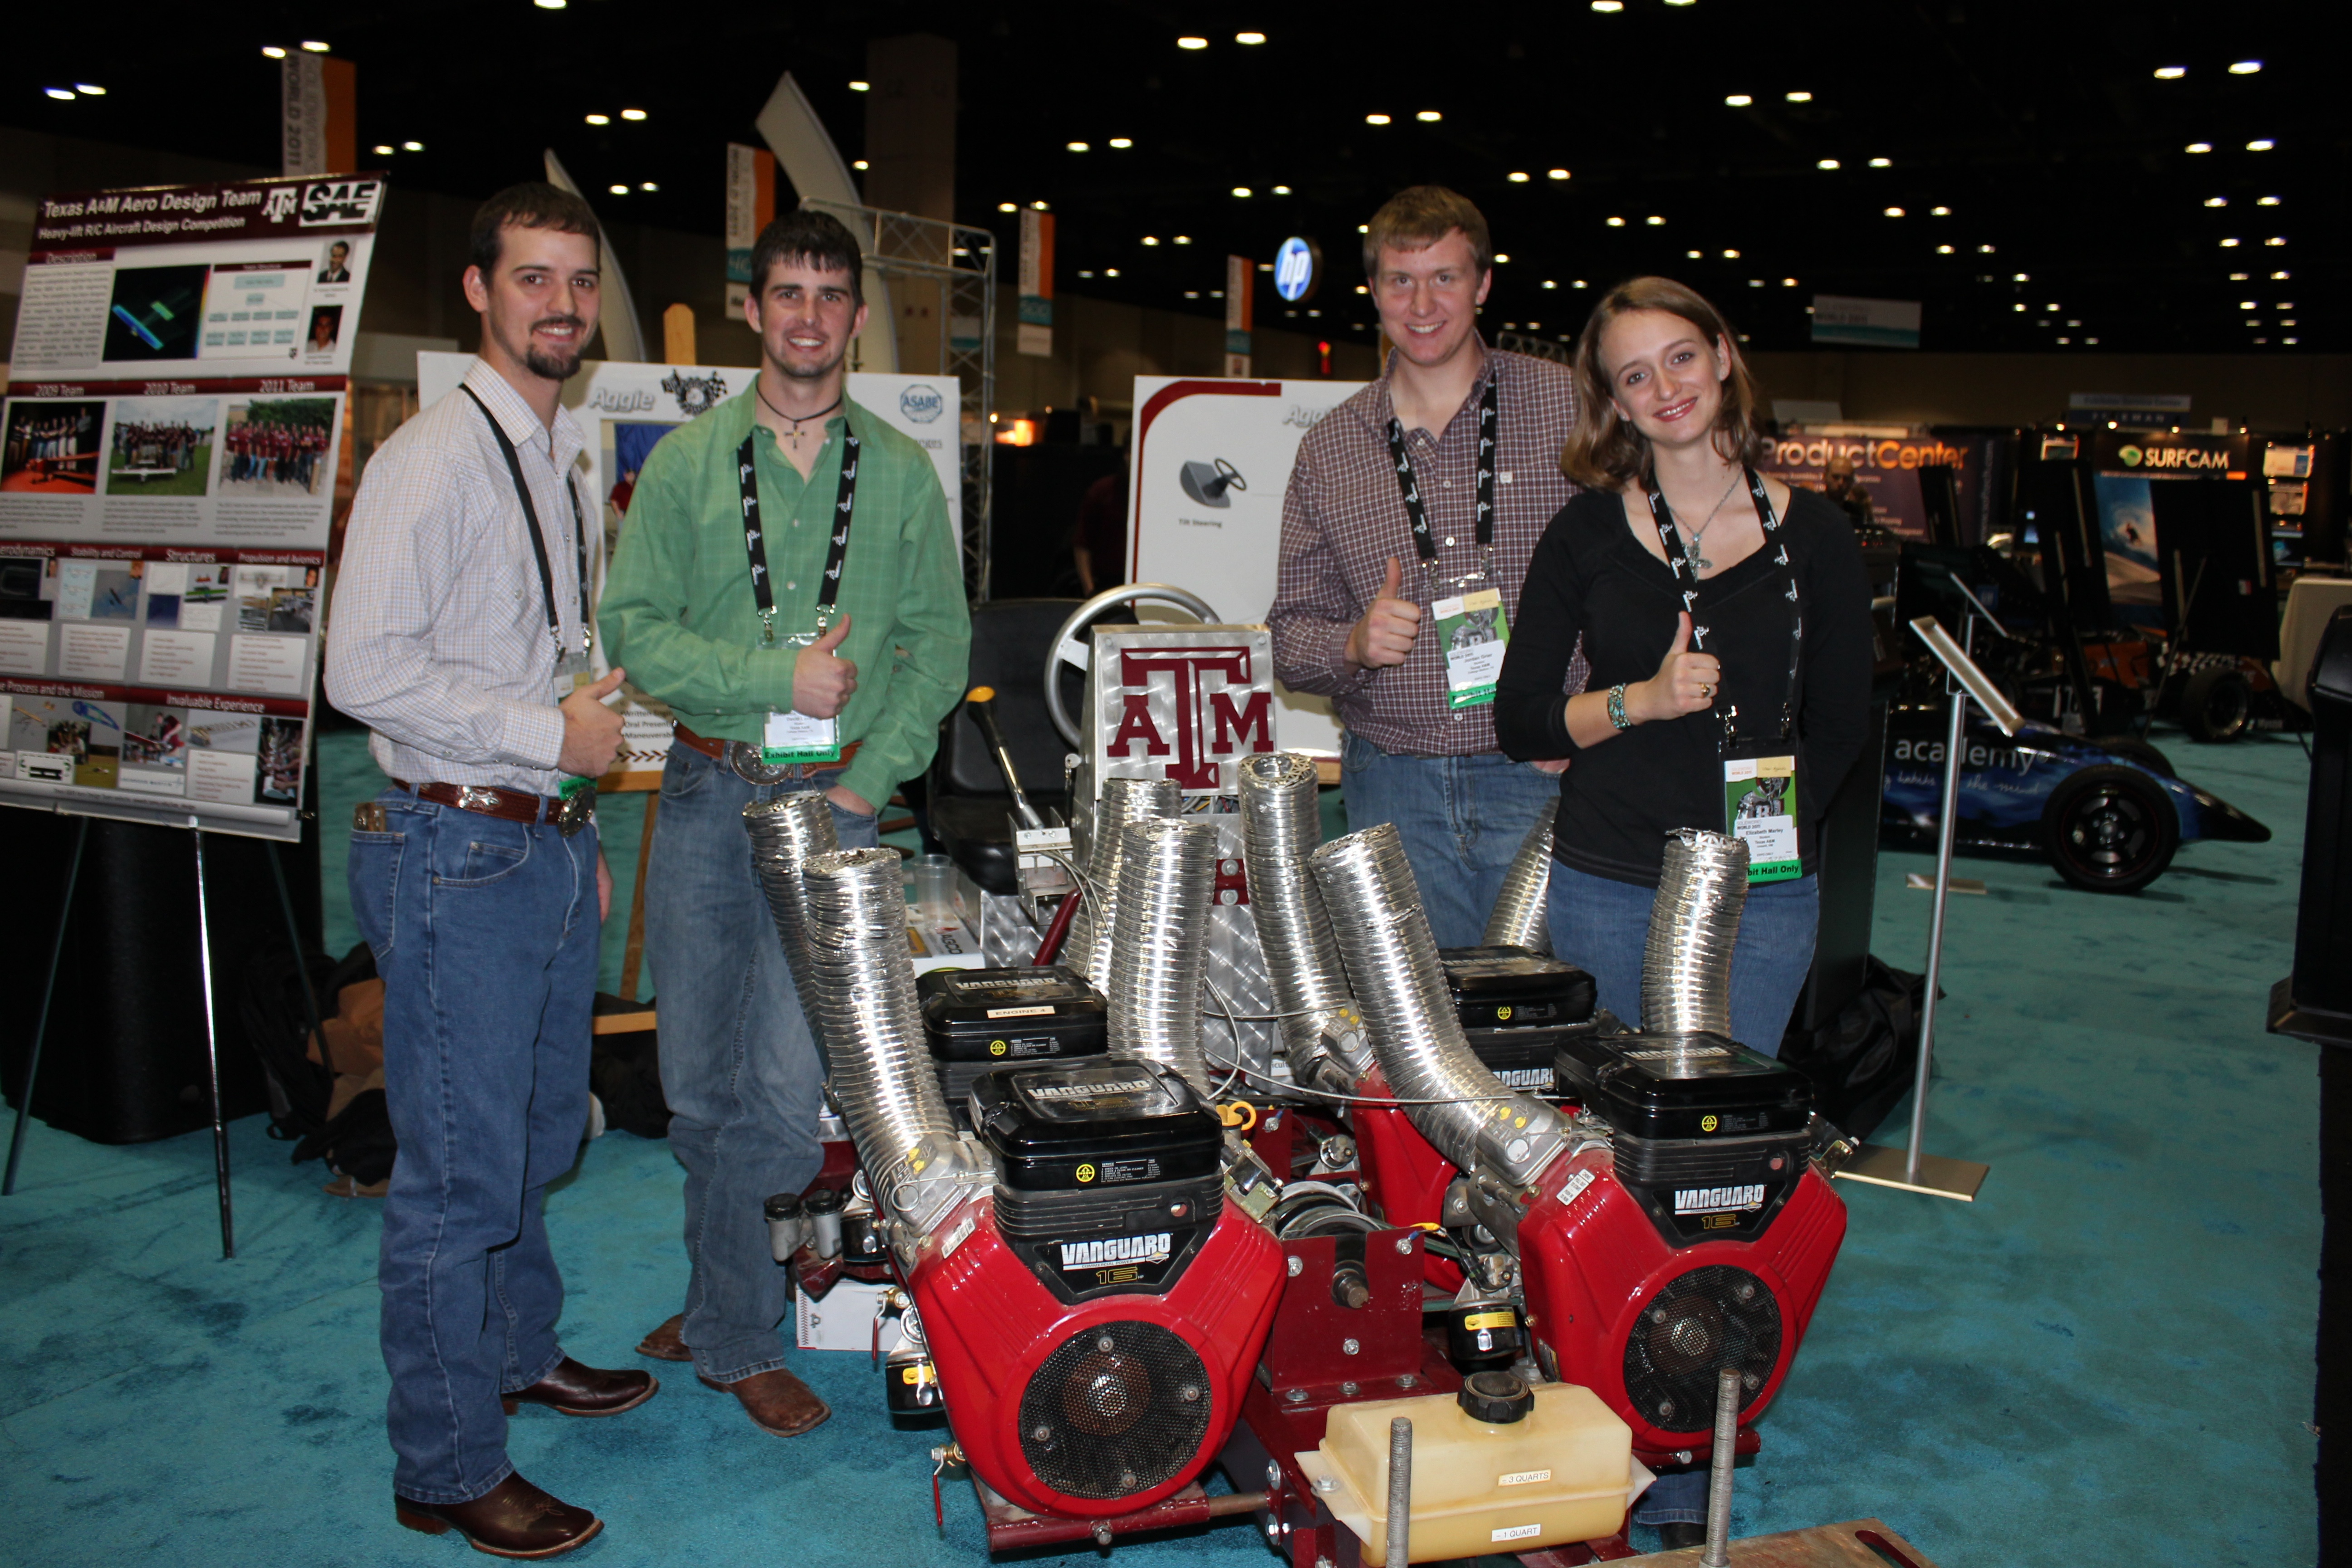 Not your father's John Deere #sww11